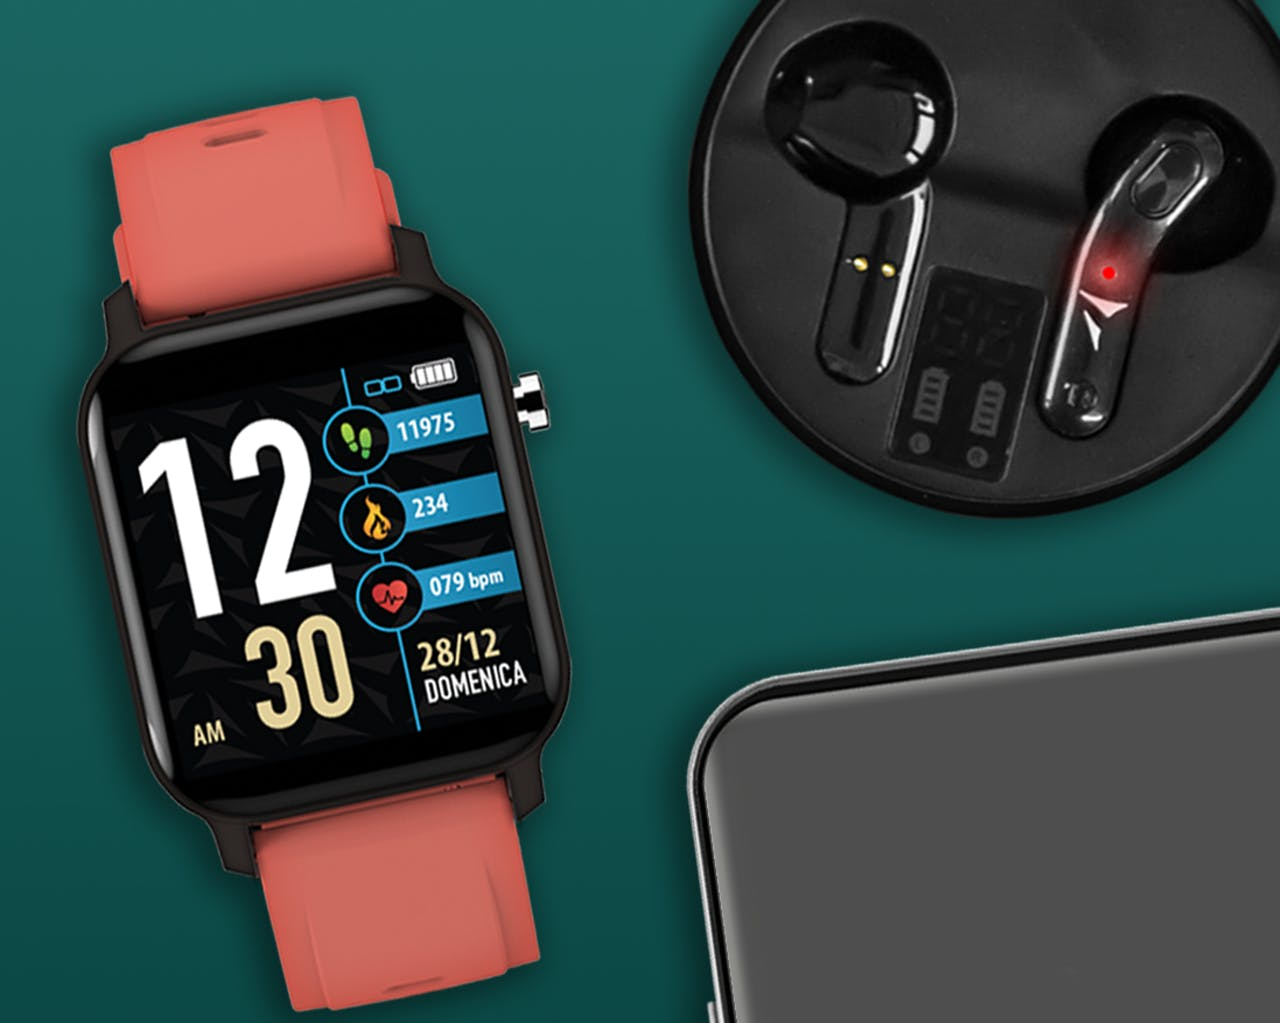 Explore our wide range of iOS & Android Smart Watches and air pods from Techmade. Pedometer, Calories, Distance, Sleep Monitor, Call & SMS Alert